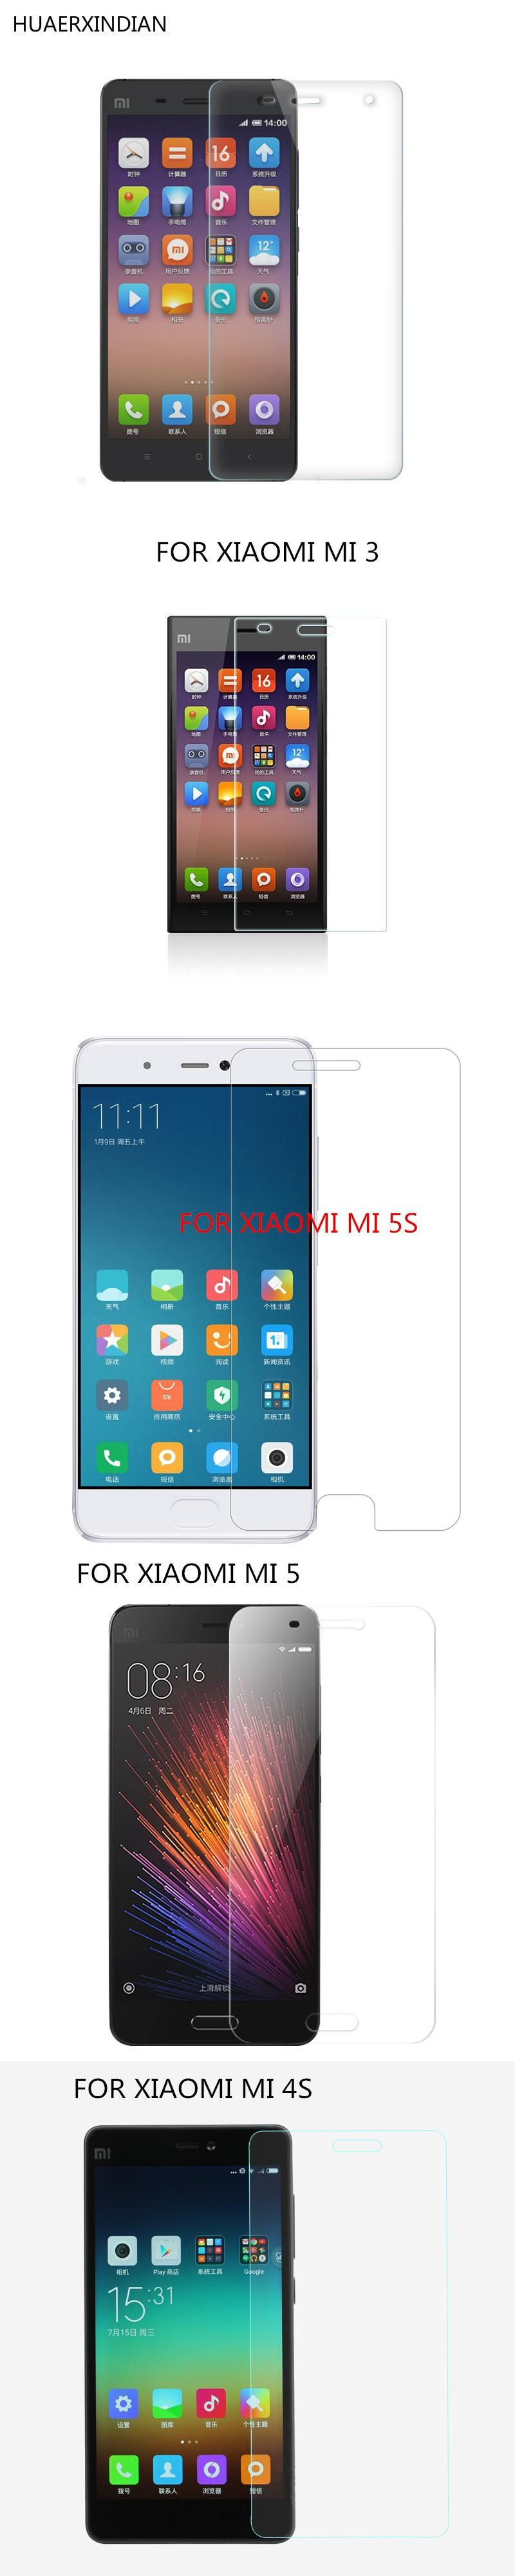 for Xiaomi 3 4 5 5s plus 4s 4i 4c prime Screen Protector 9H 2 5D Tempered Glass for mi3 mi4 mi5 mi5s mi4i mi4s Protective